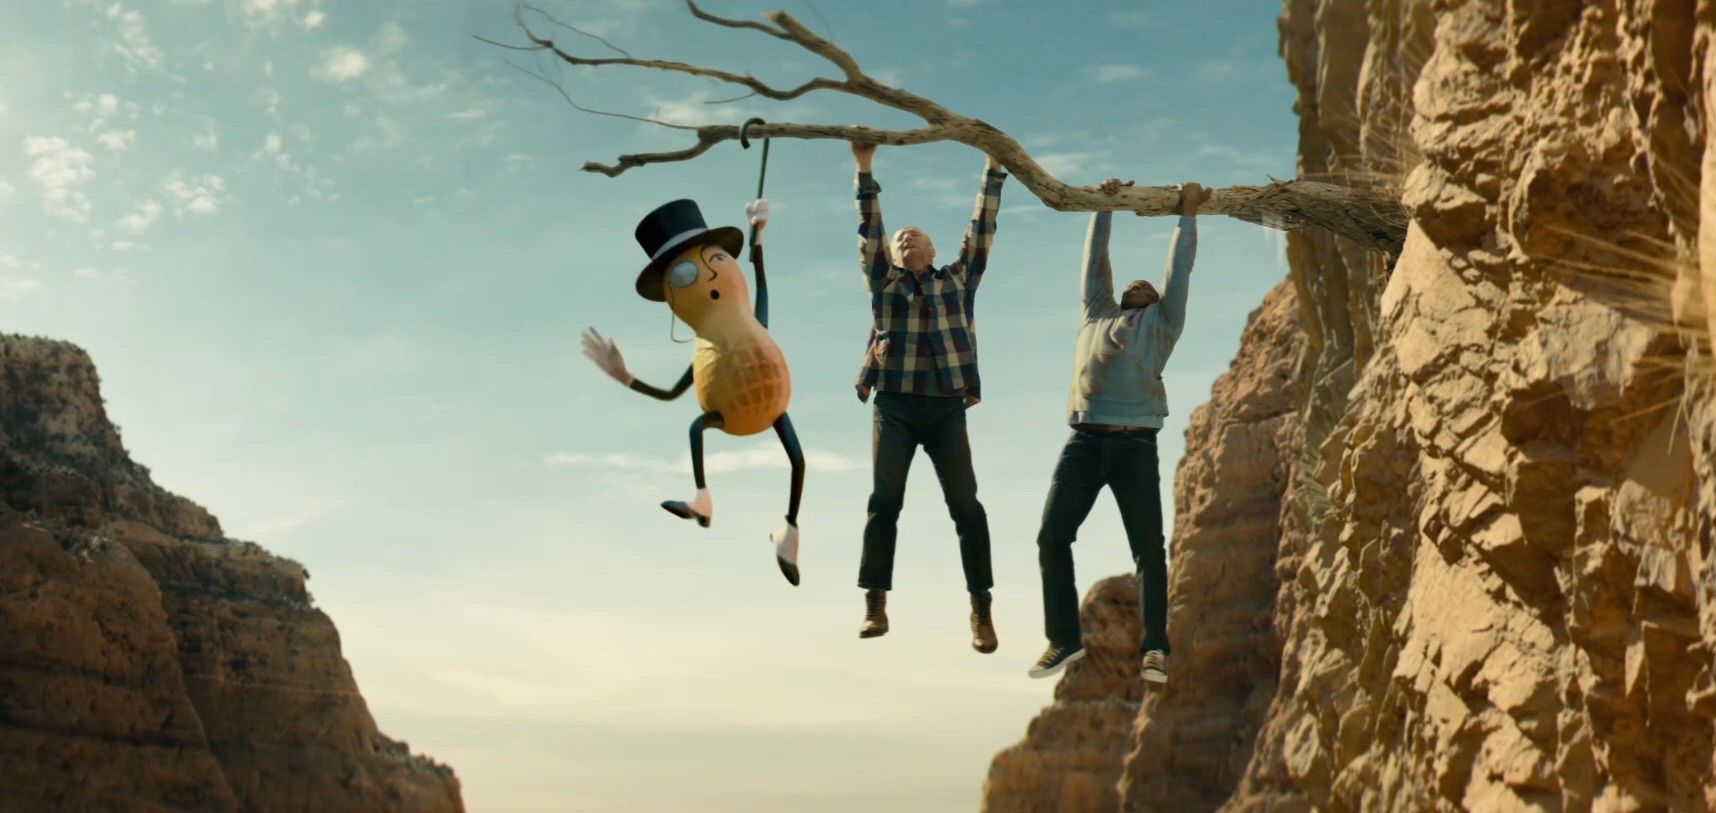 Planters Killed Off Mr. Peanut in a Pre-Super Bowl Ad. Yes, Brands Have Resorted to Bloodshed.